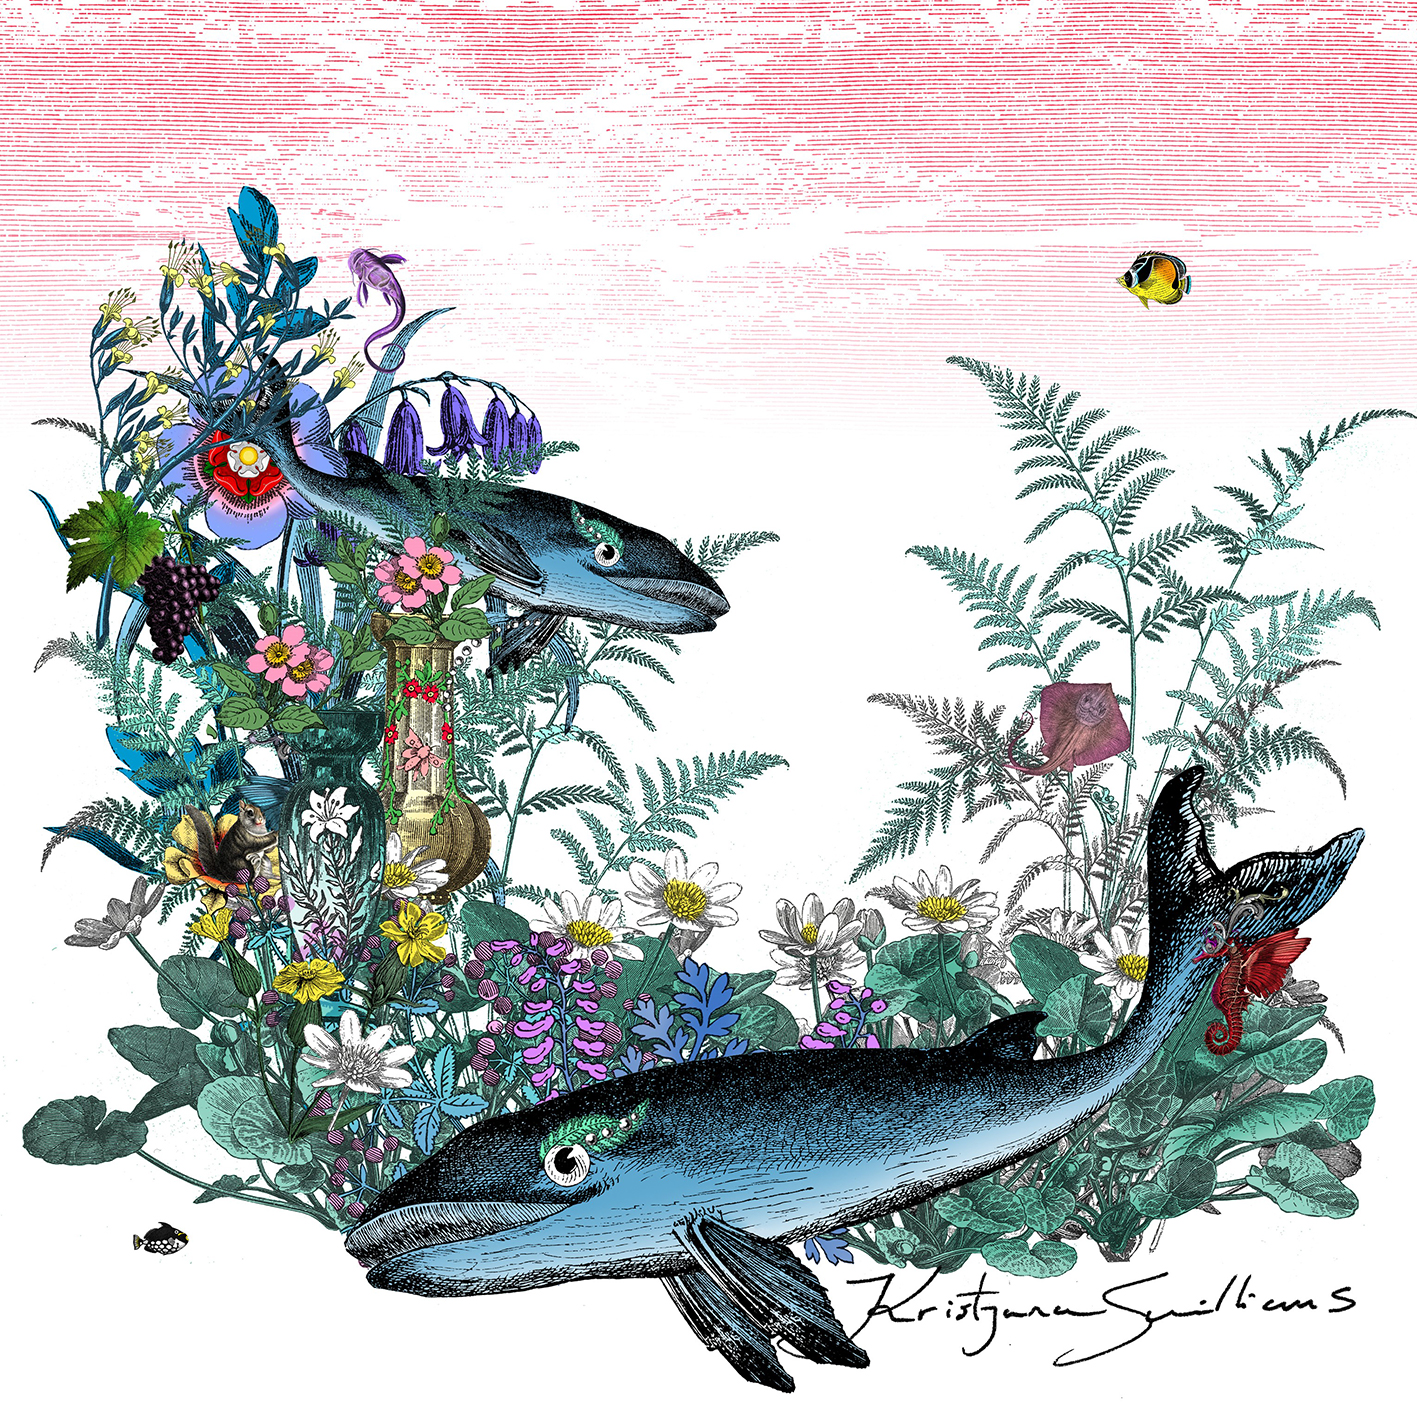 Intricate line drawing of two whales surrounded by the most detailed leaves, flowers, fruits and ferns, with other exotic fish swimming around